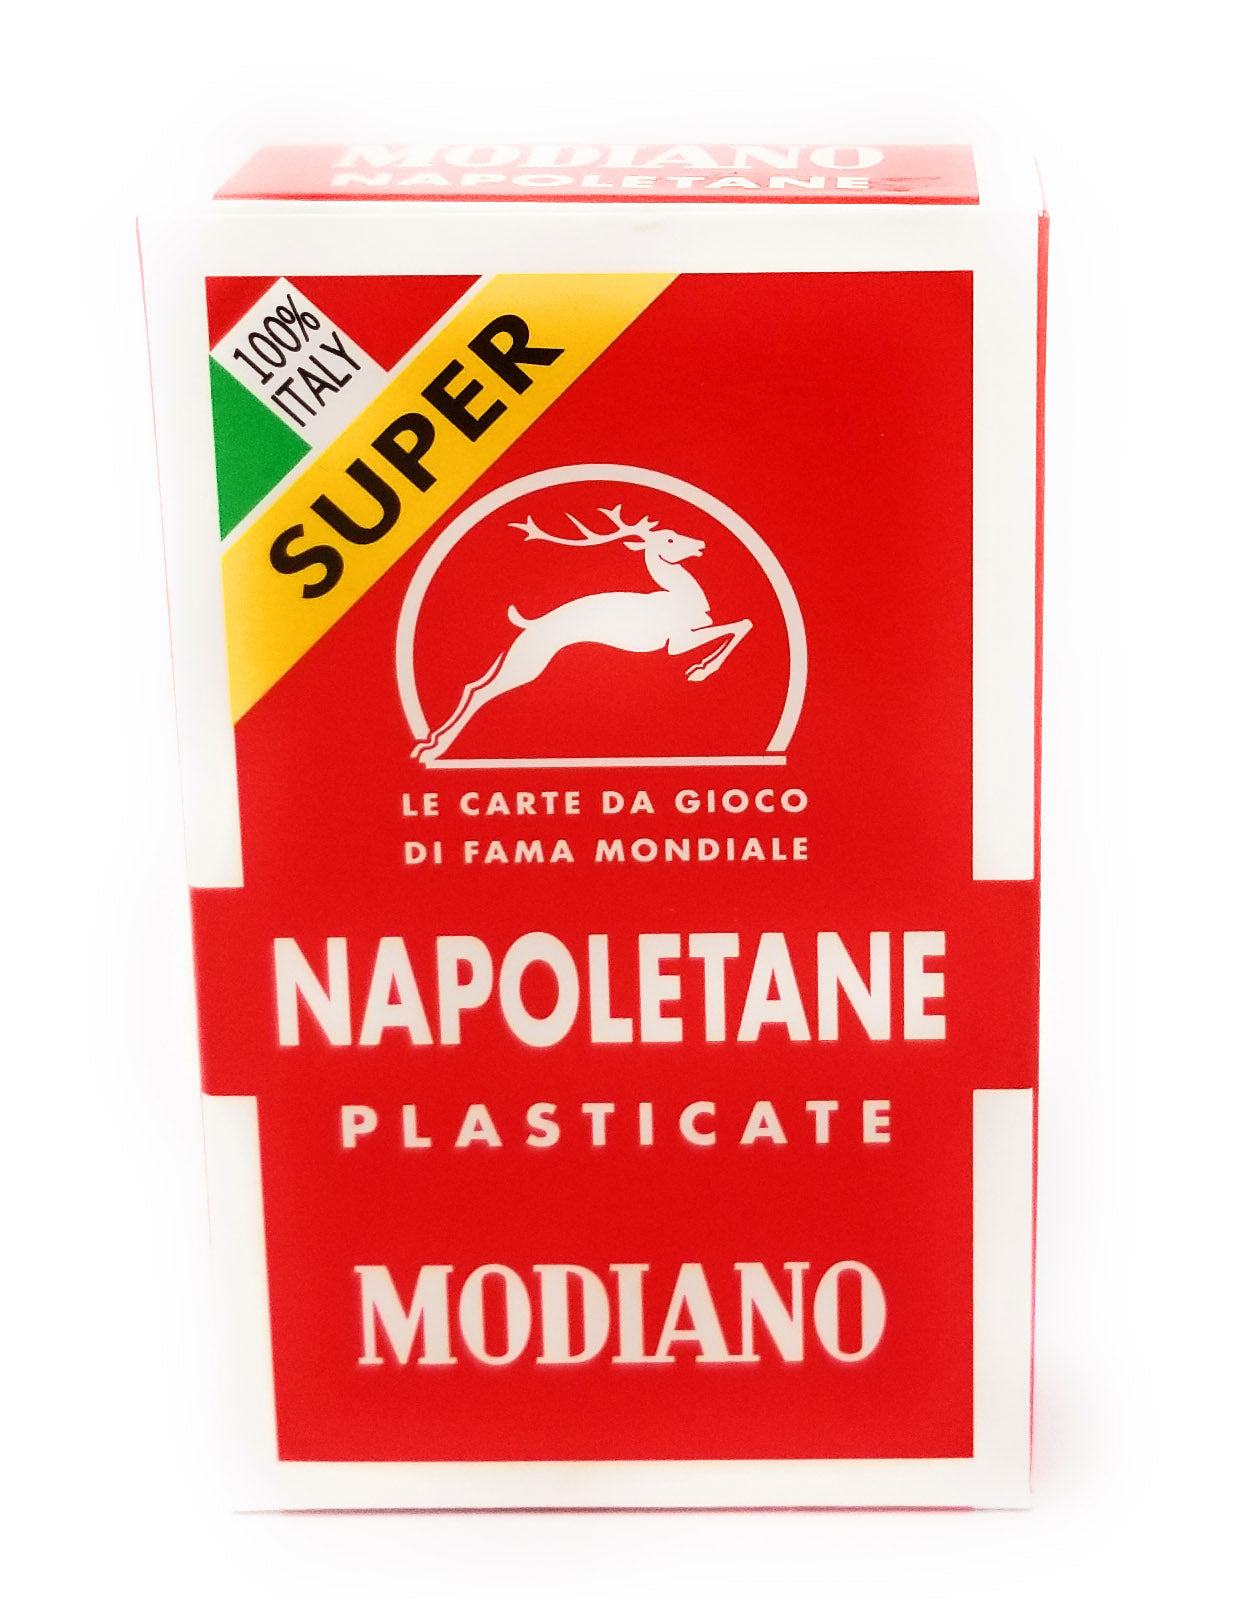 Napoletane 97/25 Modiano Regional Italian Playing Cards. Authentic Italian Deck.  2 Decks